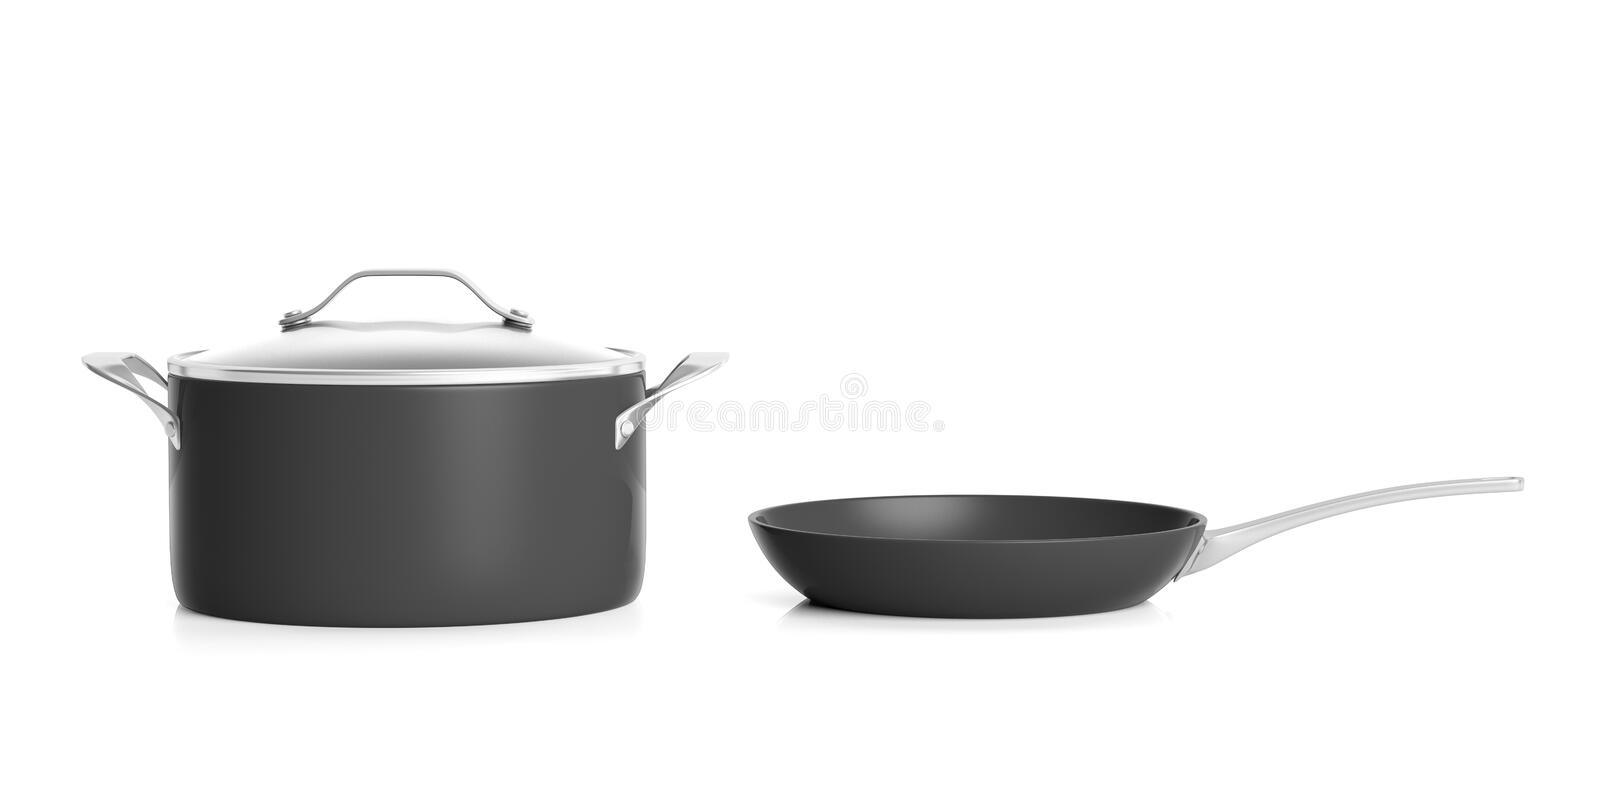 Black stainless steel cooking pot and frying pan isolated on white background. 3d illustration royalty free illustration